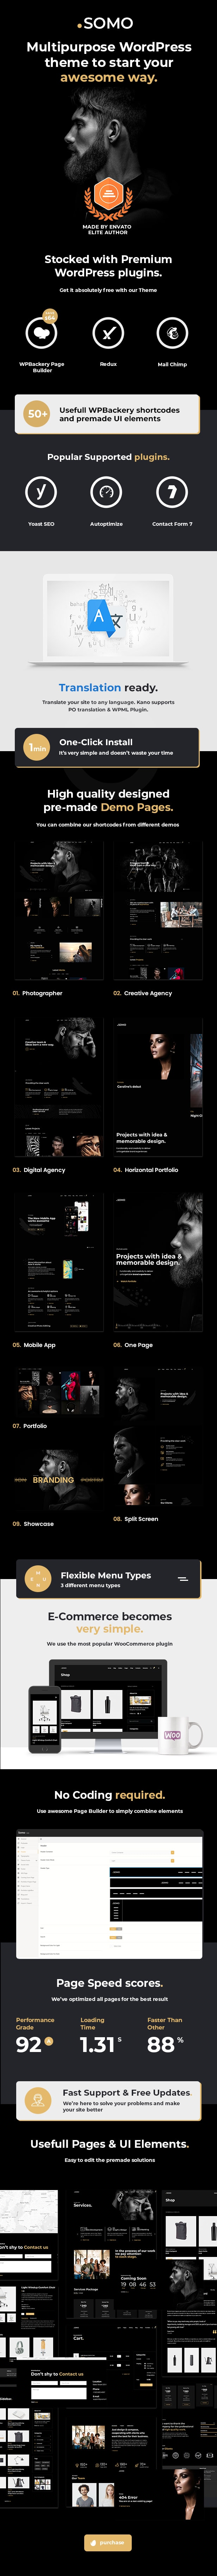 Somo - Creative MultiPurpose WordPress Theme - 4